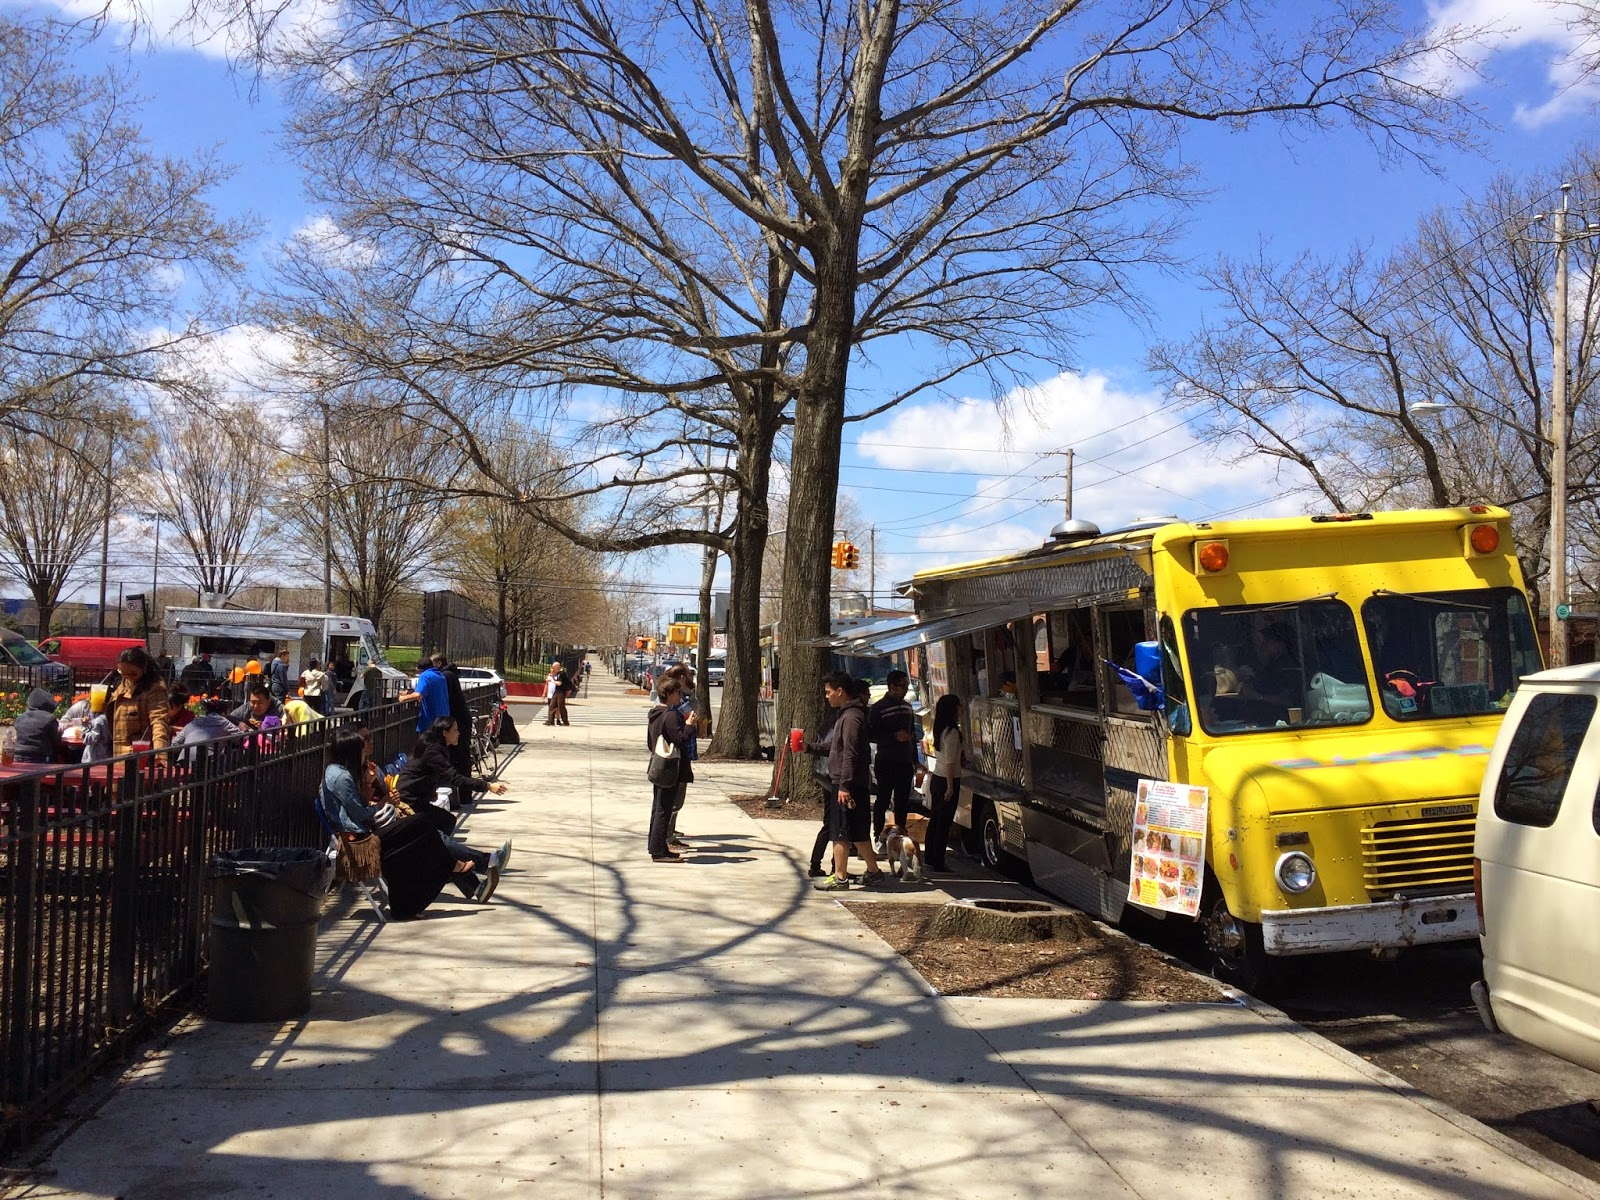 538. Red Hook Food Vendors